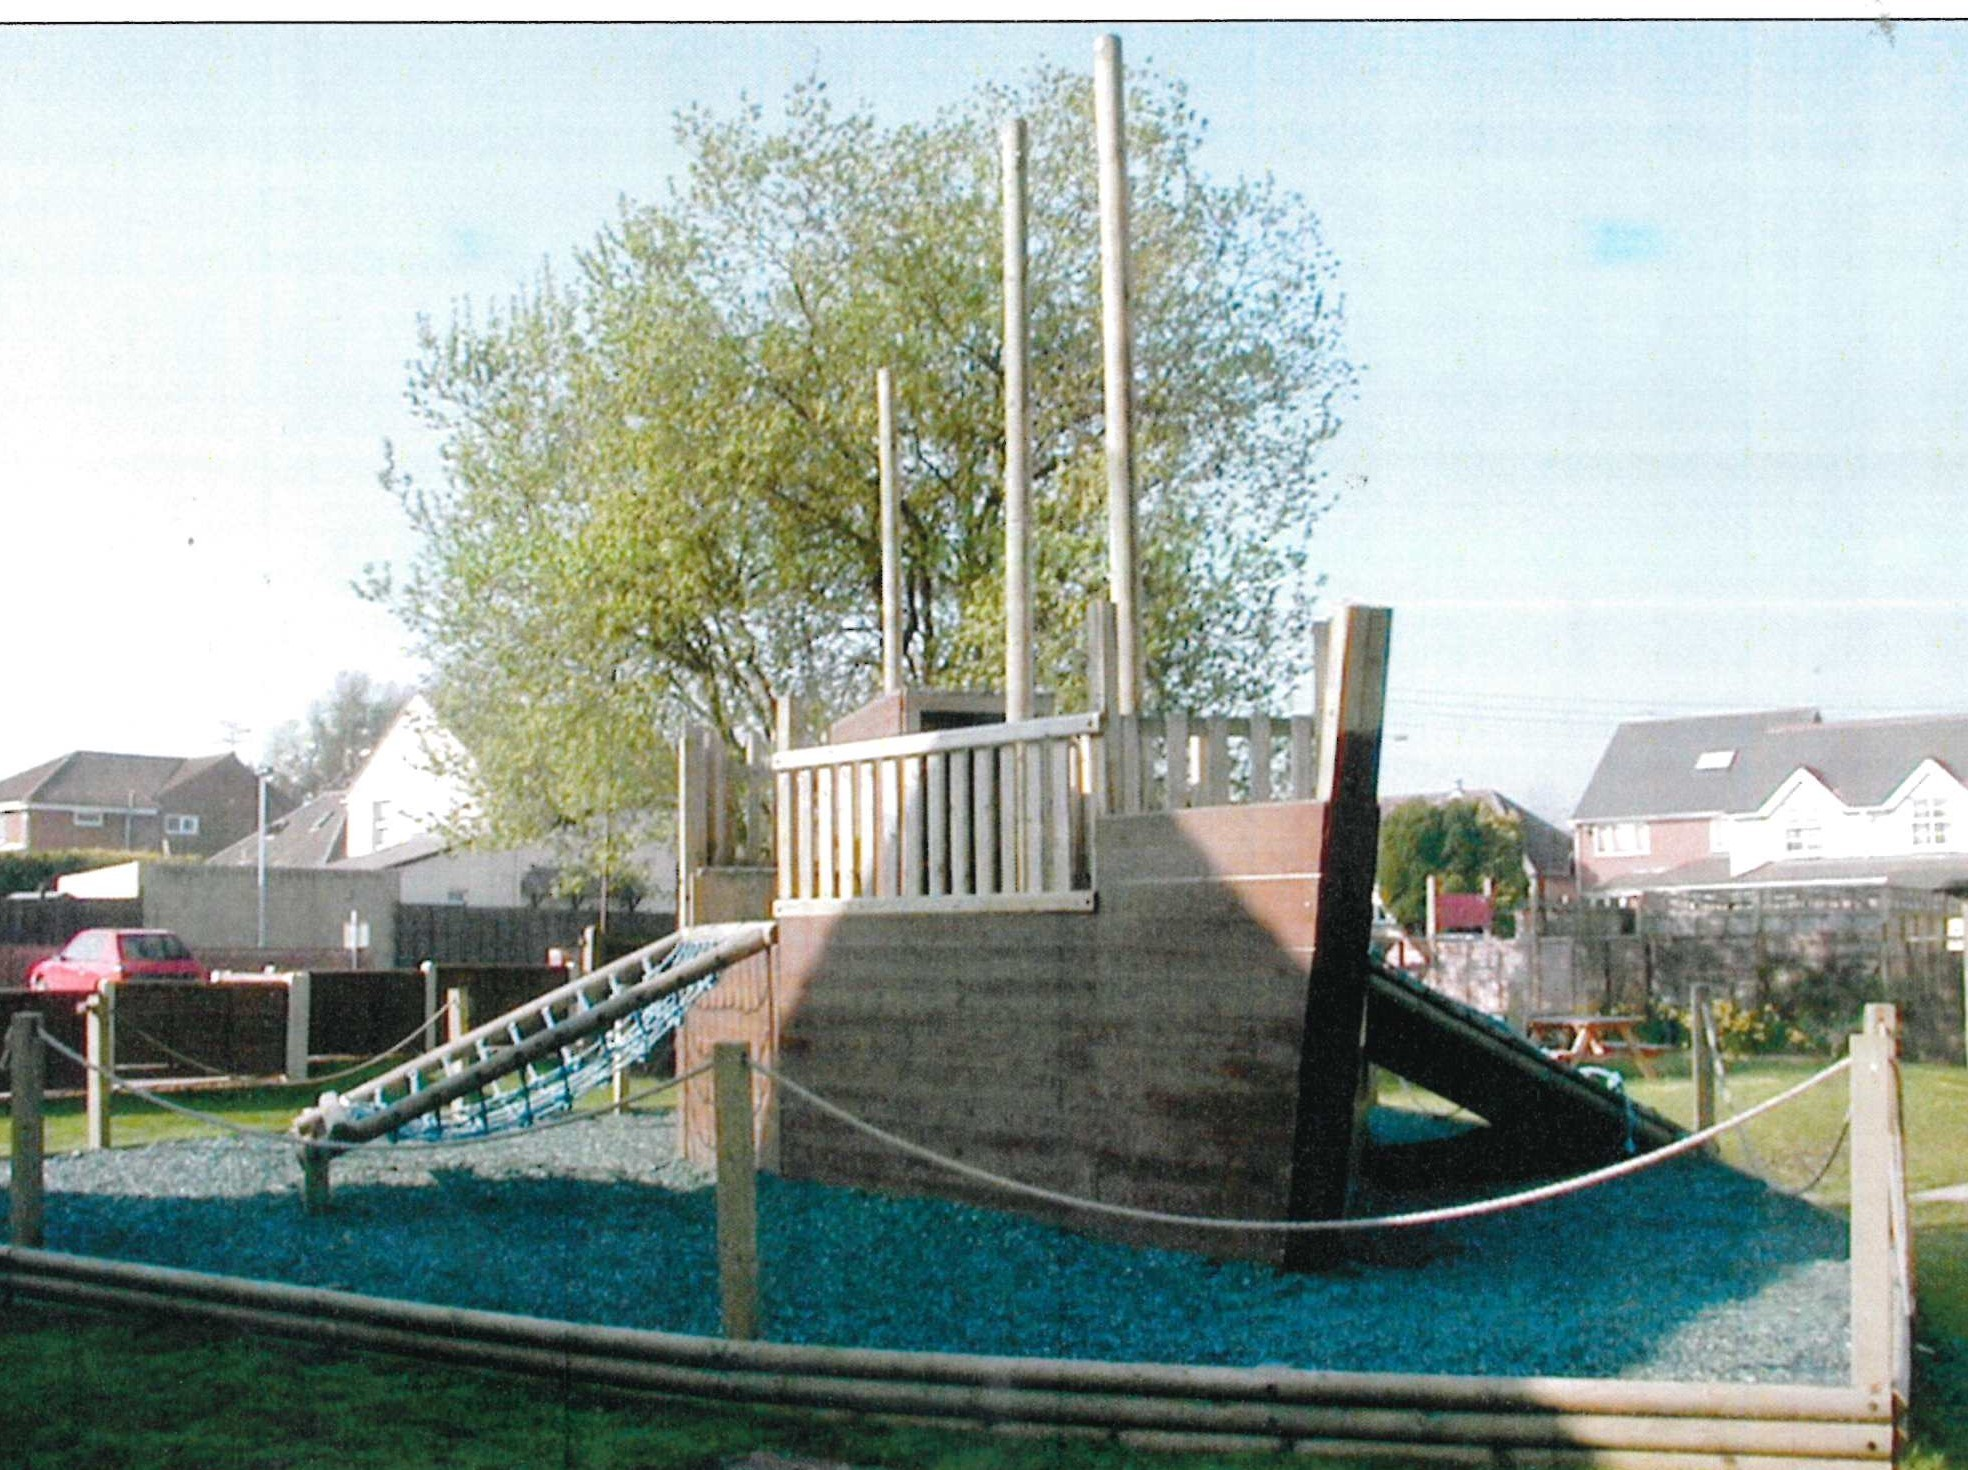 The Patriot's Arms boat, photographed by the Advertiser in 2003. The boat has been put up for sale on eBay.